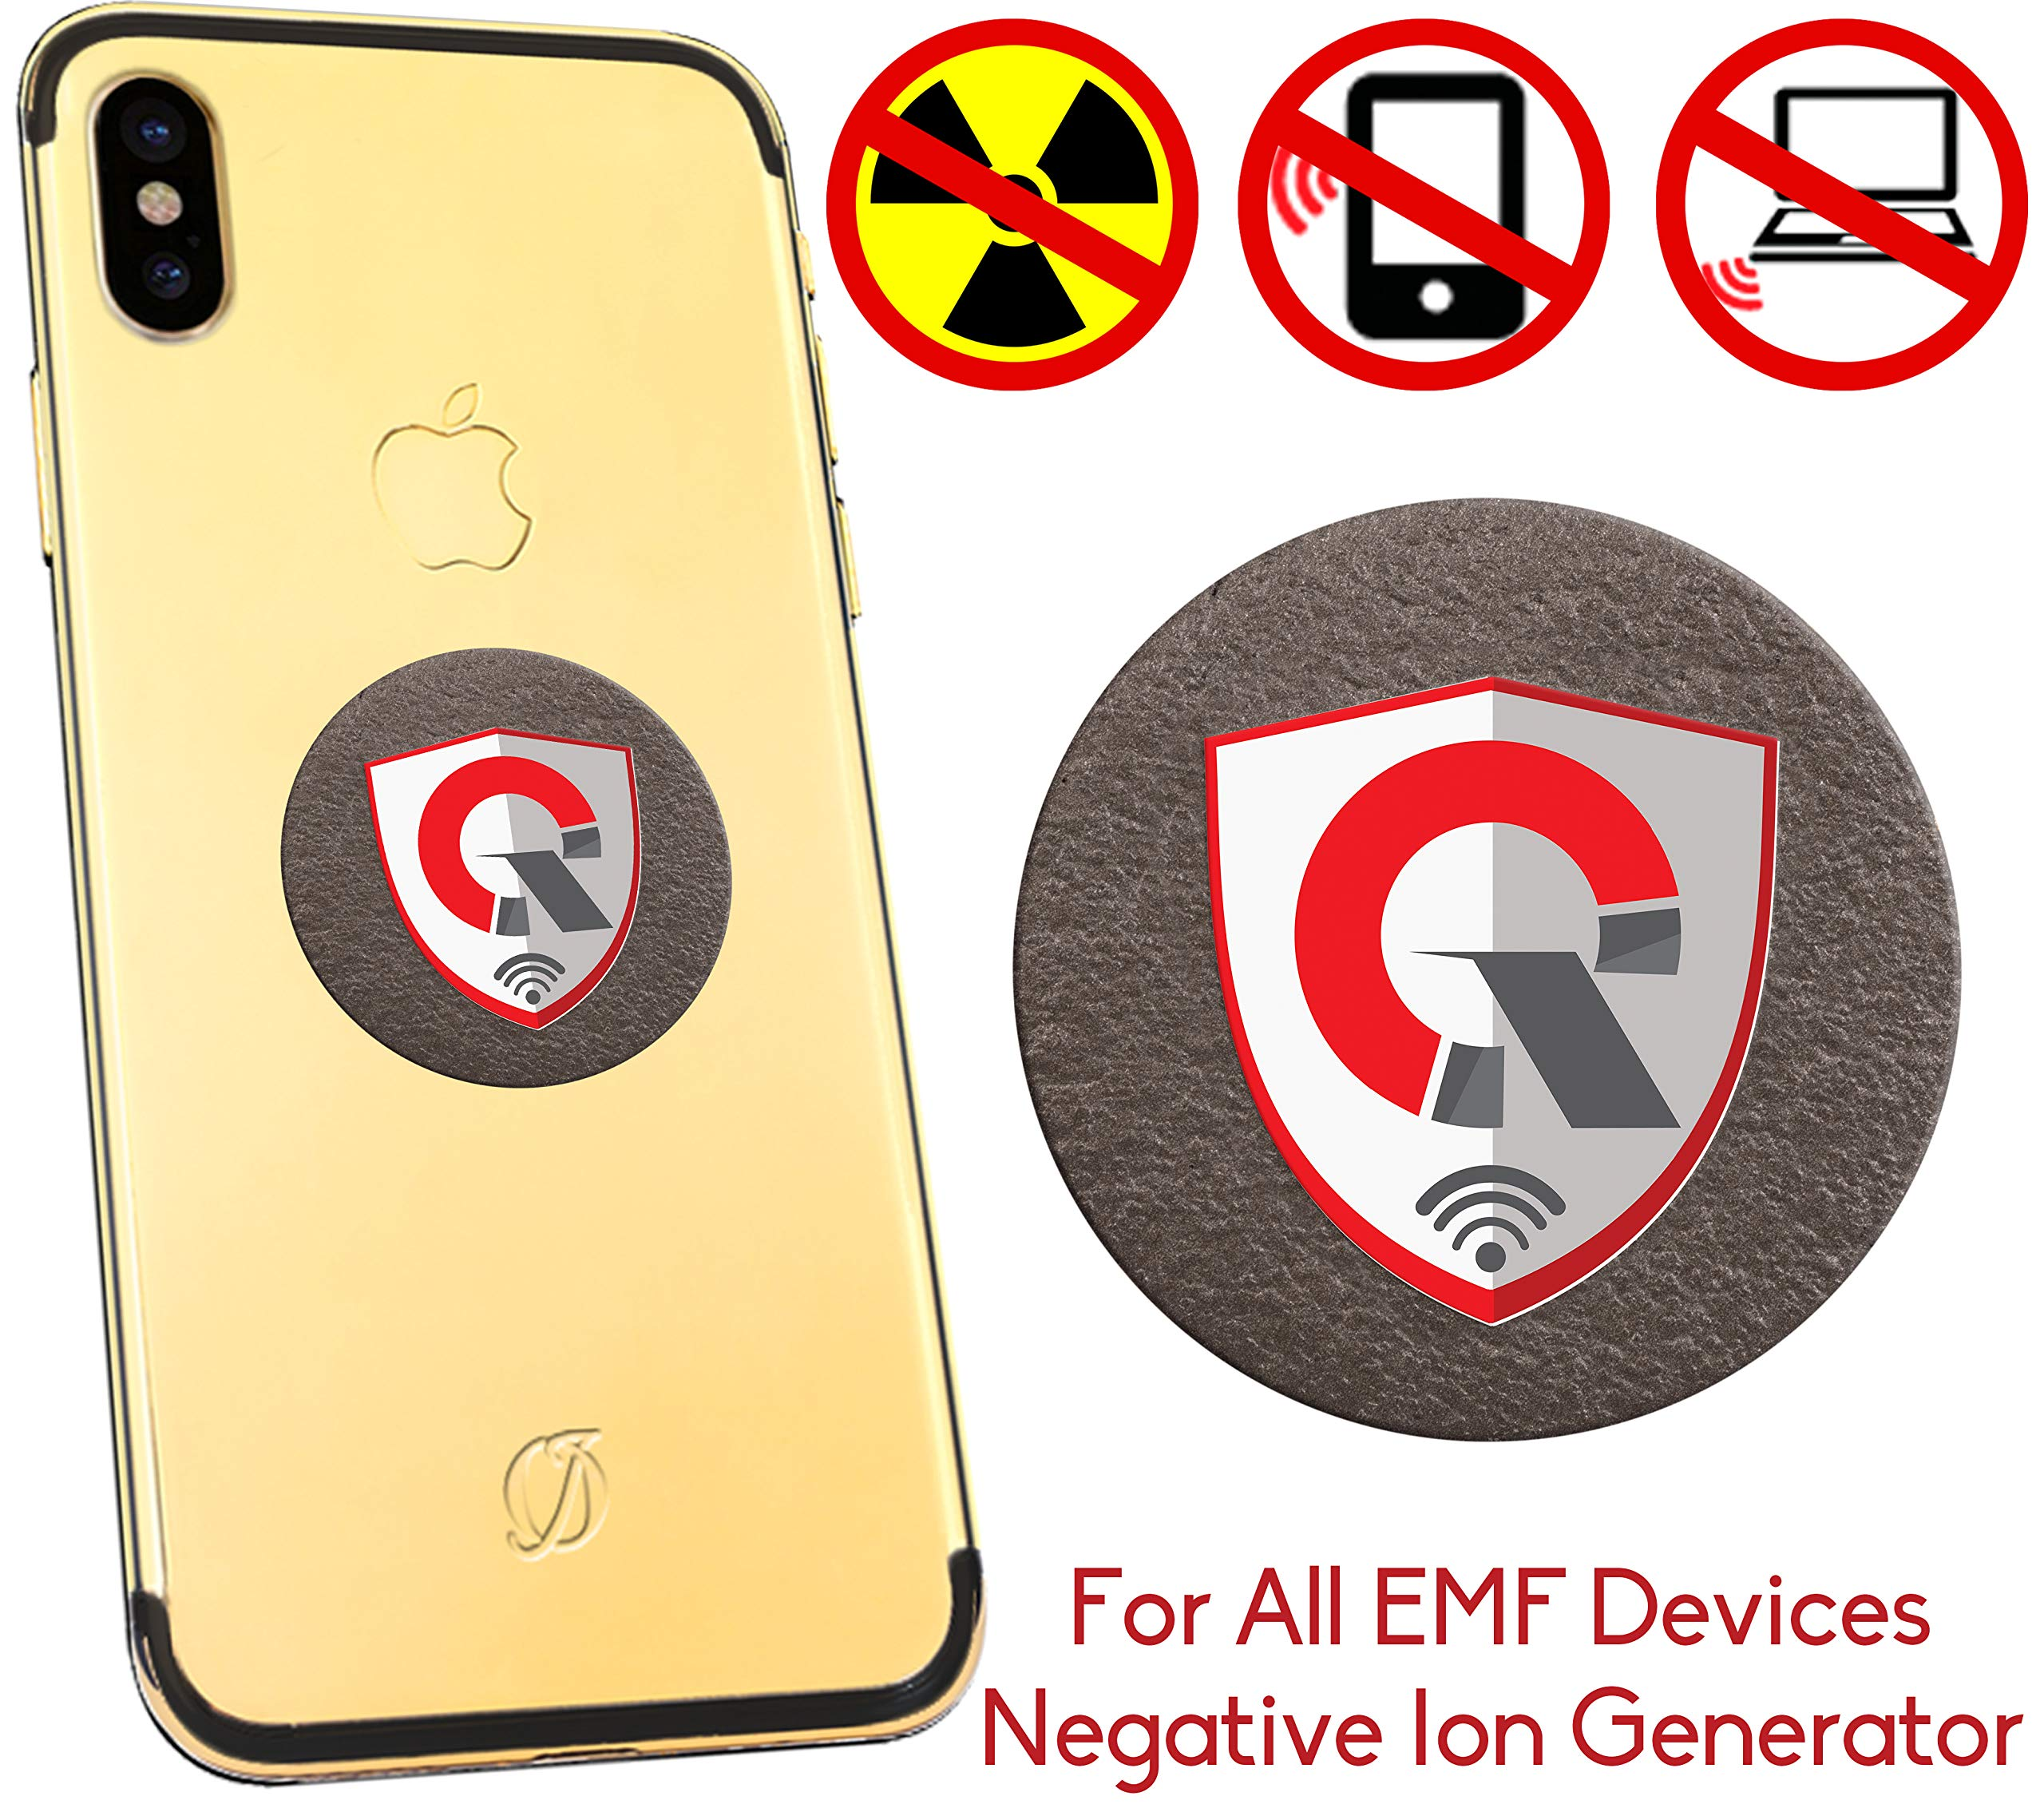 360 Round EMF Protection Tesla Technology: EMF Absorption From CELL PHONE, WiFi, Laptop-All EMF Devices|Negative Ion Generator| International AWARDS|Anti Radiation Shield, EMR Blocker Device 1.18 INCH by QUANTHOR